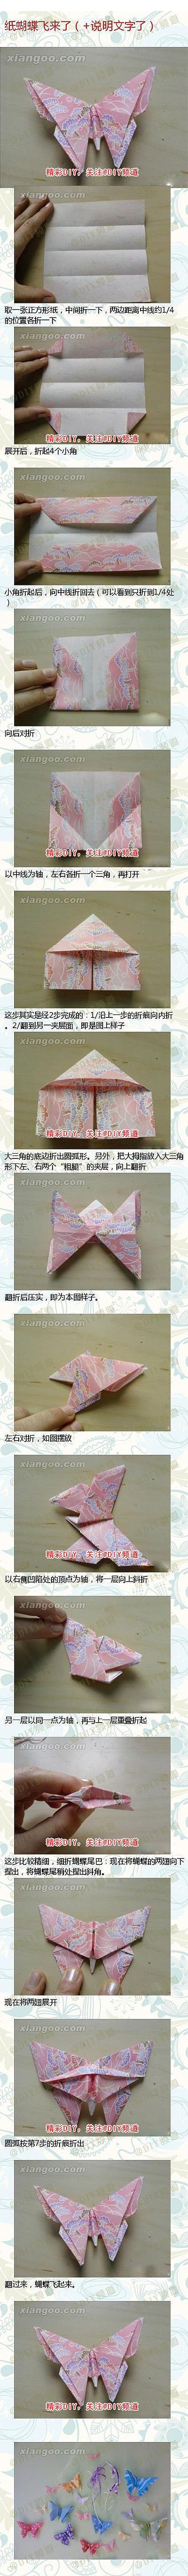 .Origami Butterfly - Crafting For Holidays